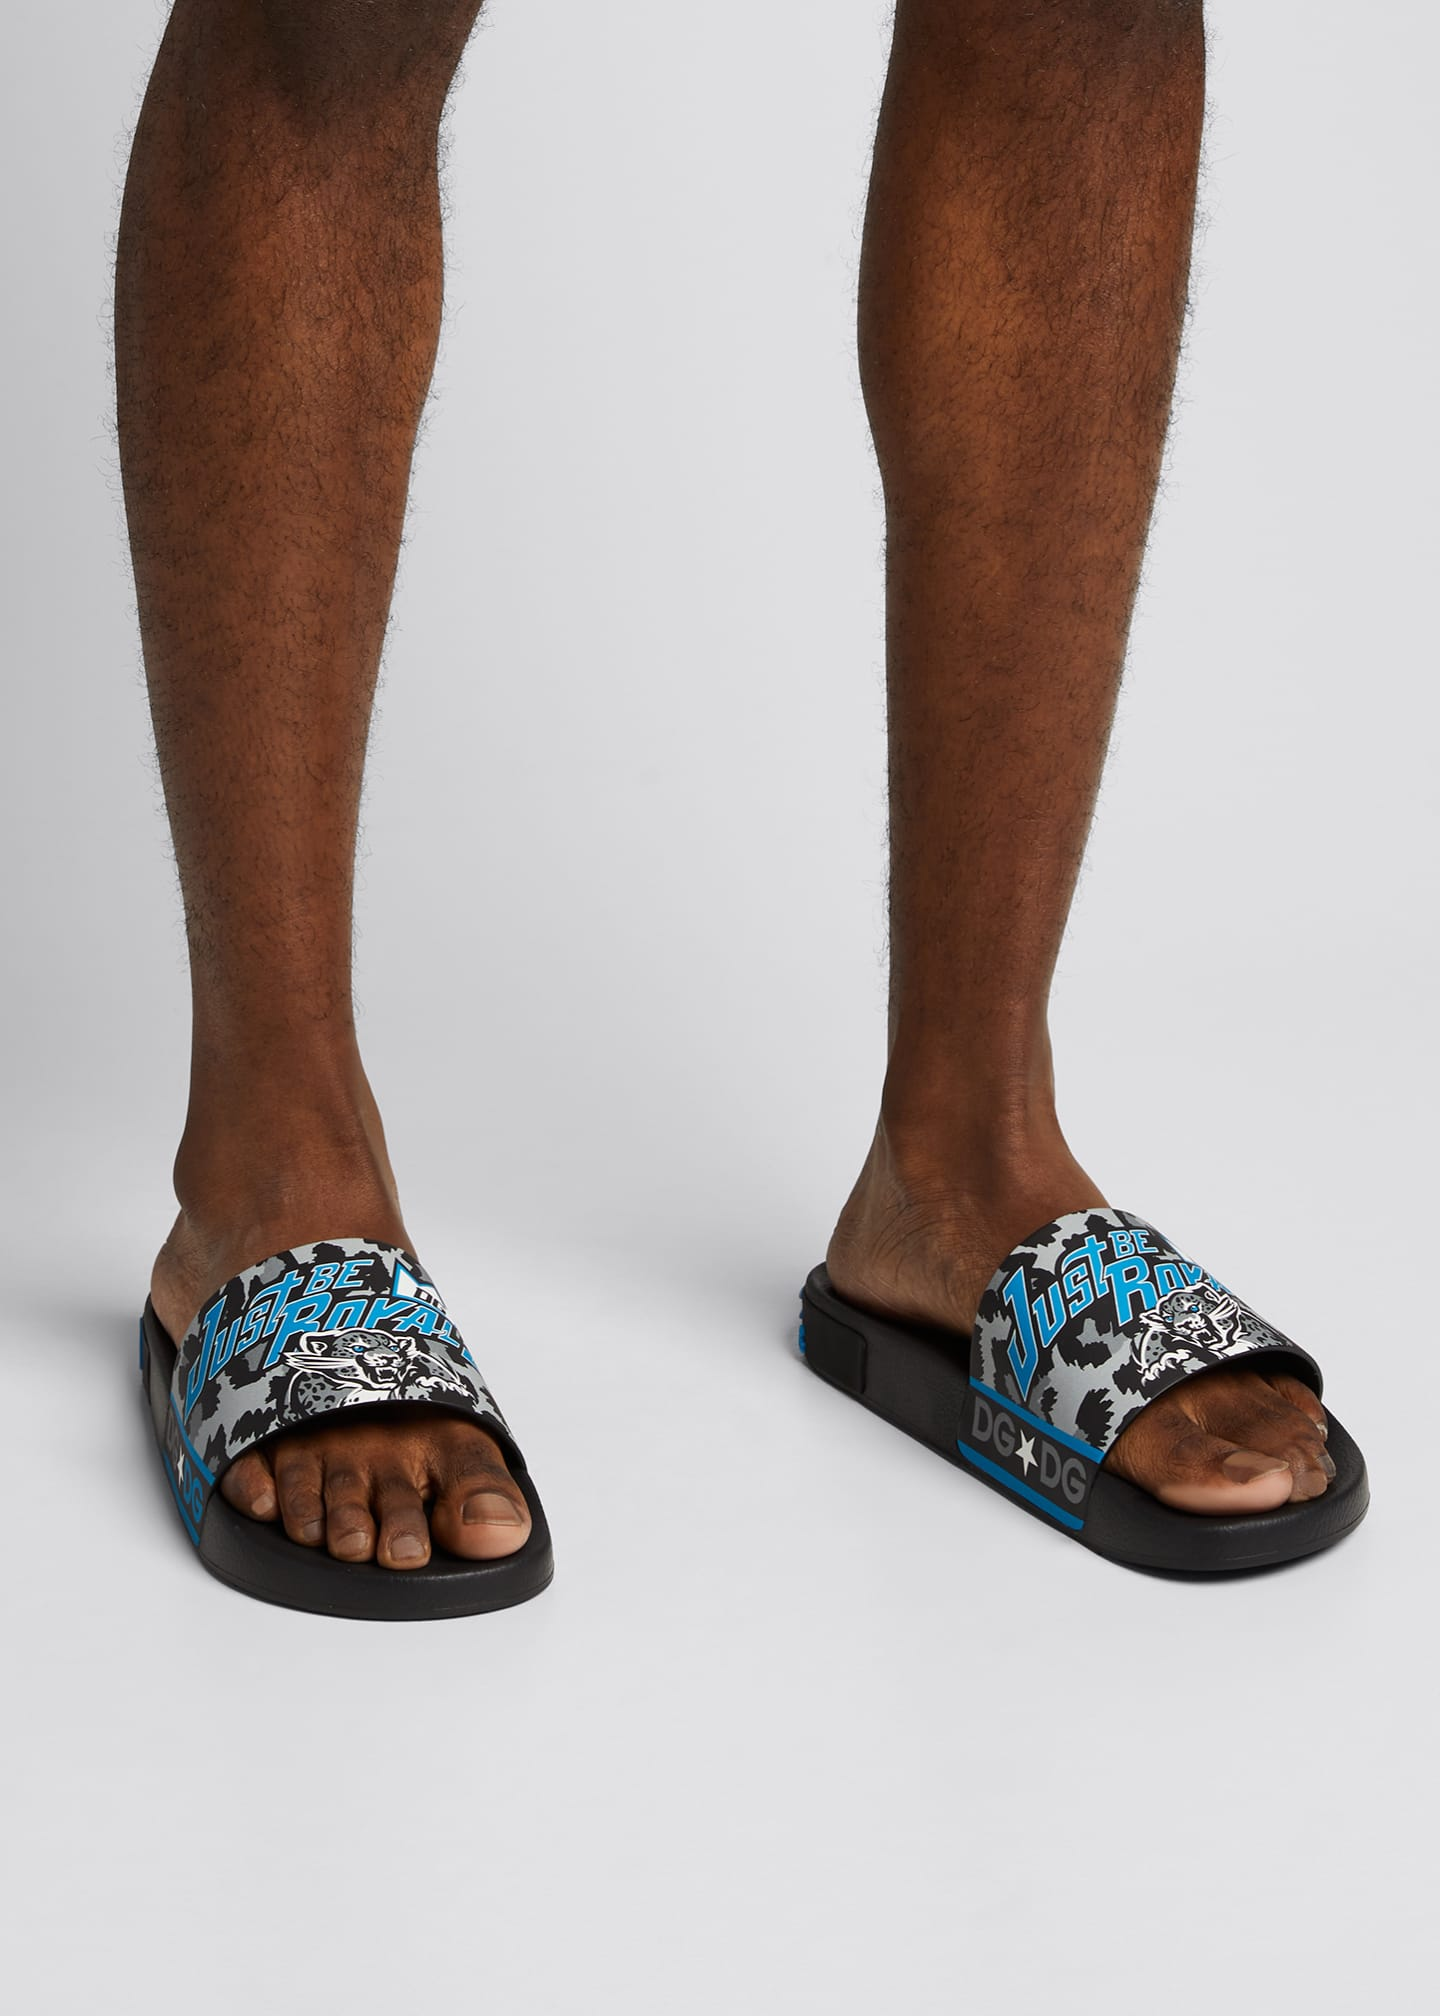 Image 2 of 5: Men's DG Royals Tiger Pool Slide Sandals